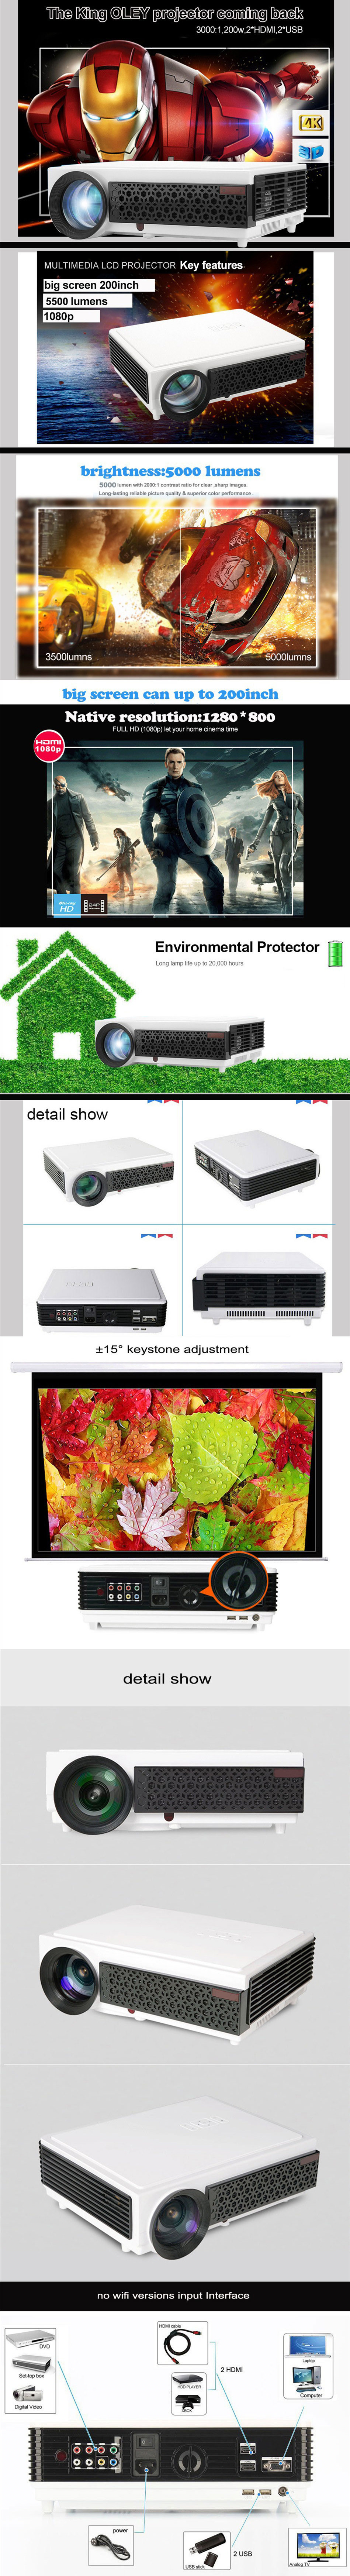 HTP 96 Plus Full HD TV LED 3D Projector 2800 Lumens 1280x800 Home Theater Projector